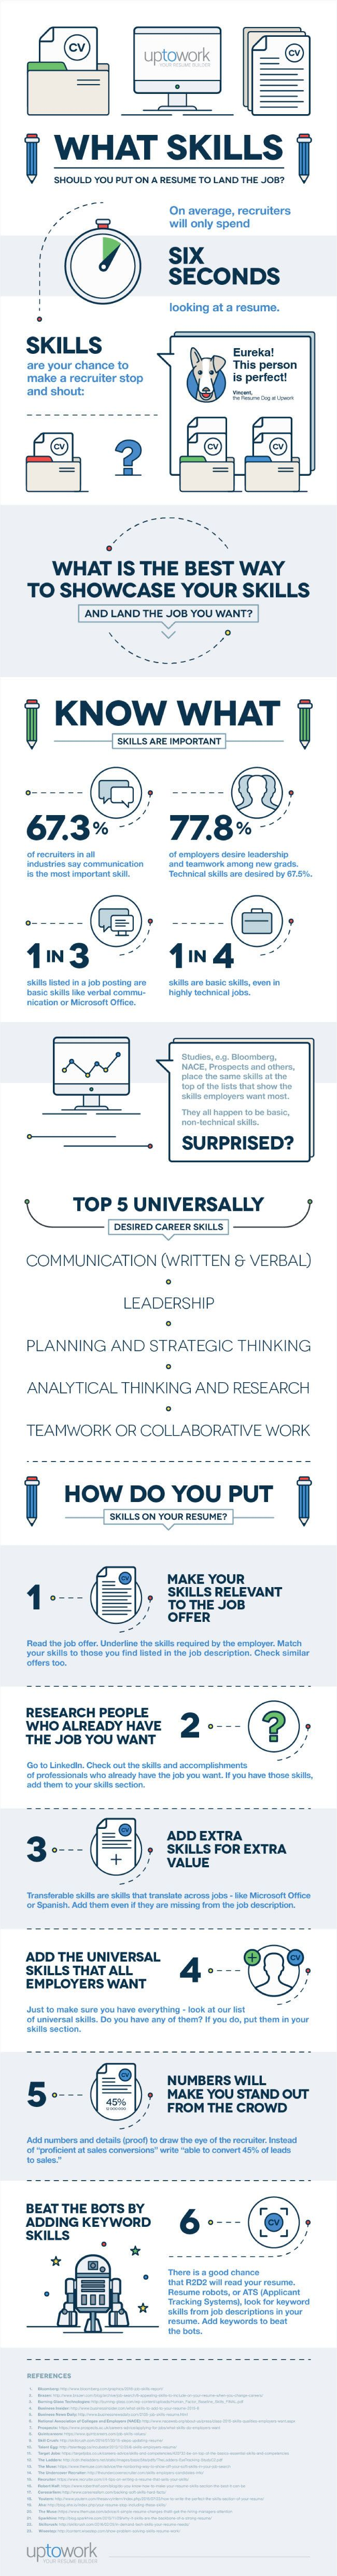 resume Top 5 Skills For Resume top 5 skills to put on your resume and how showcase them image titled them